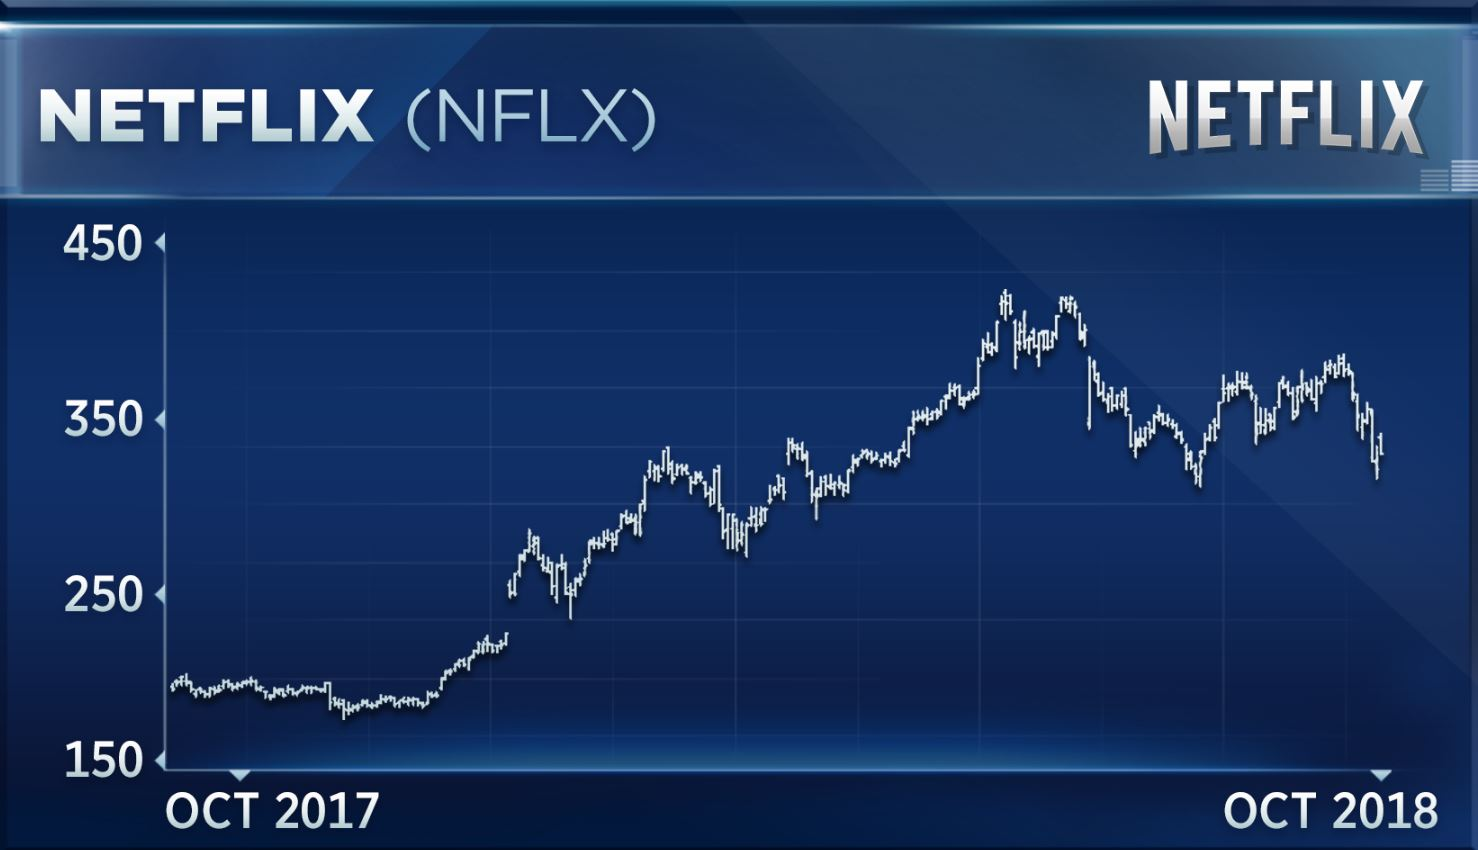 Discussion on this topic: Netflix Shares Take a Plunge, netflix-shares-take-a-plunge/